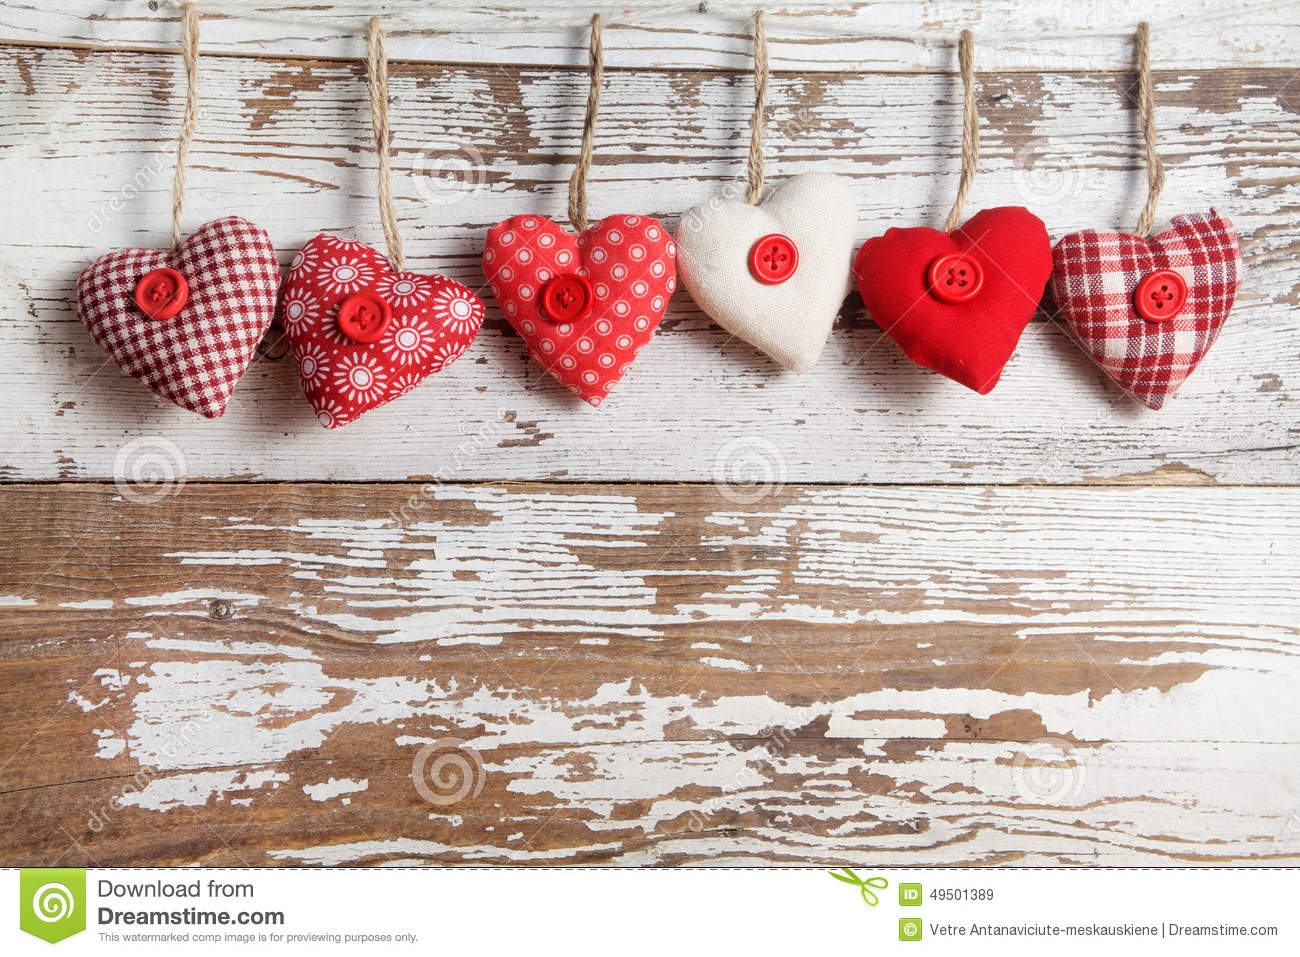 Download Fabric hearts stock image. Image of background, texture - 49501389